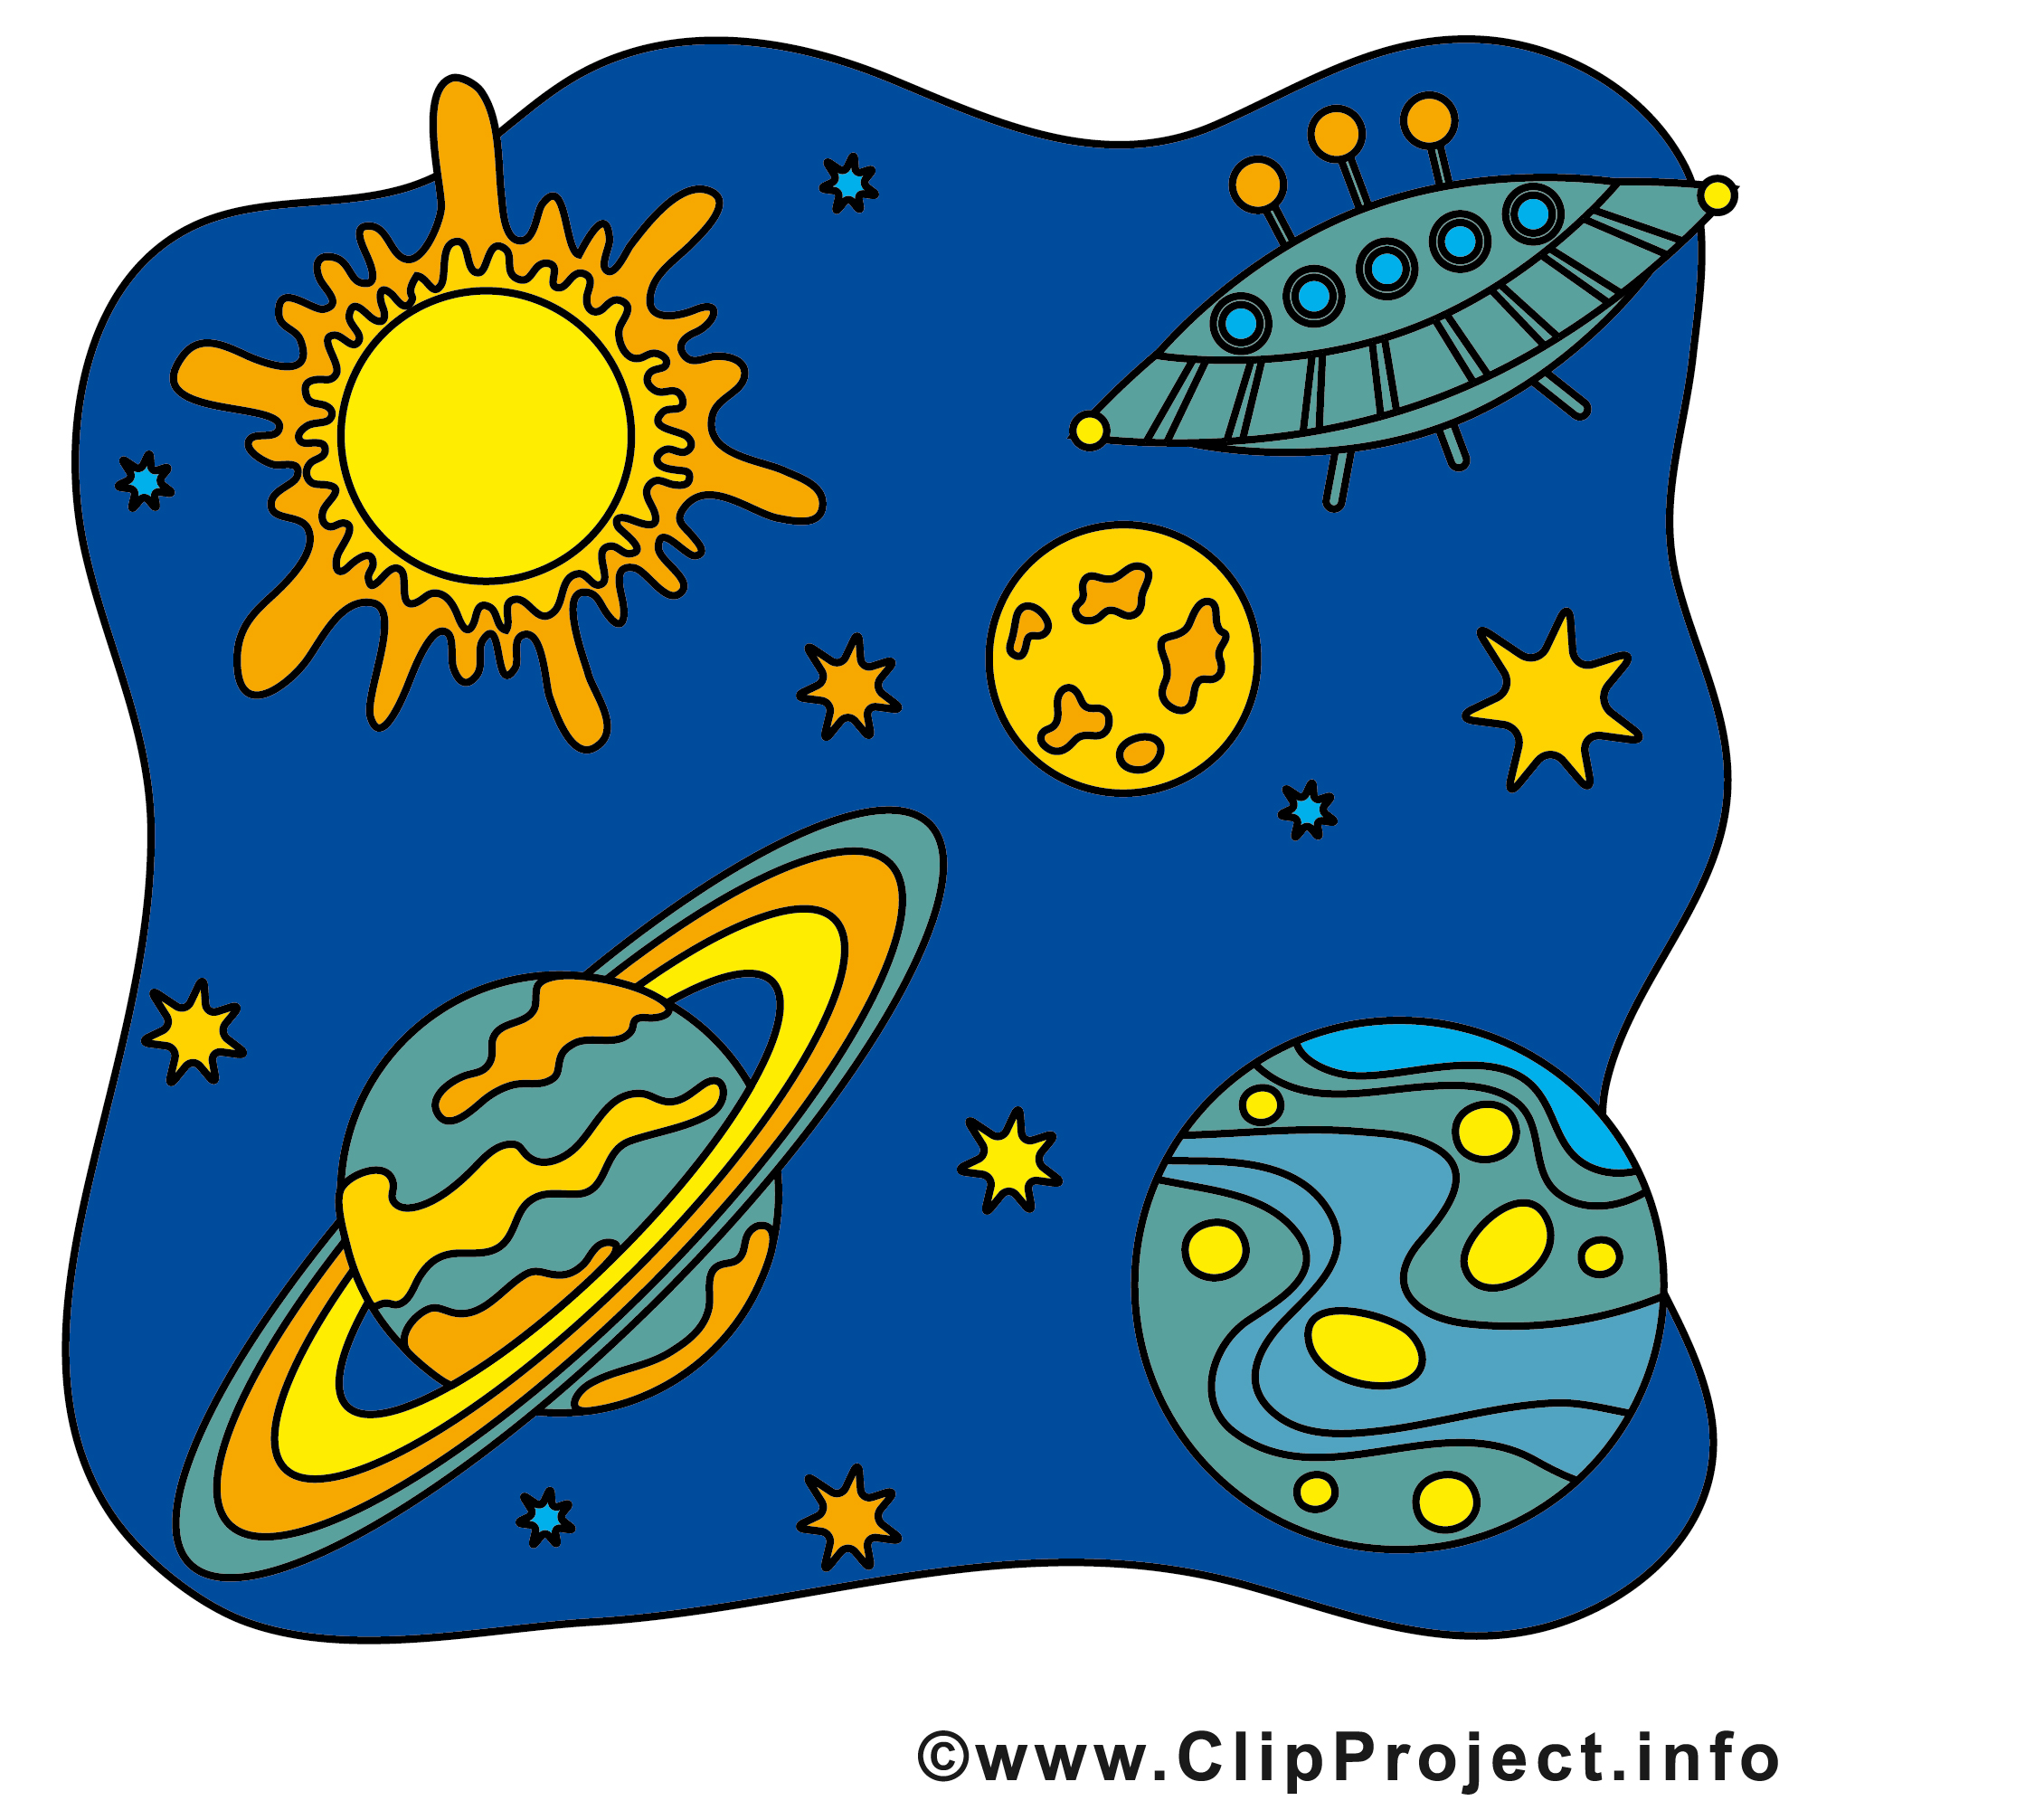 Weltraum clipart #14, Download drawings